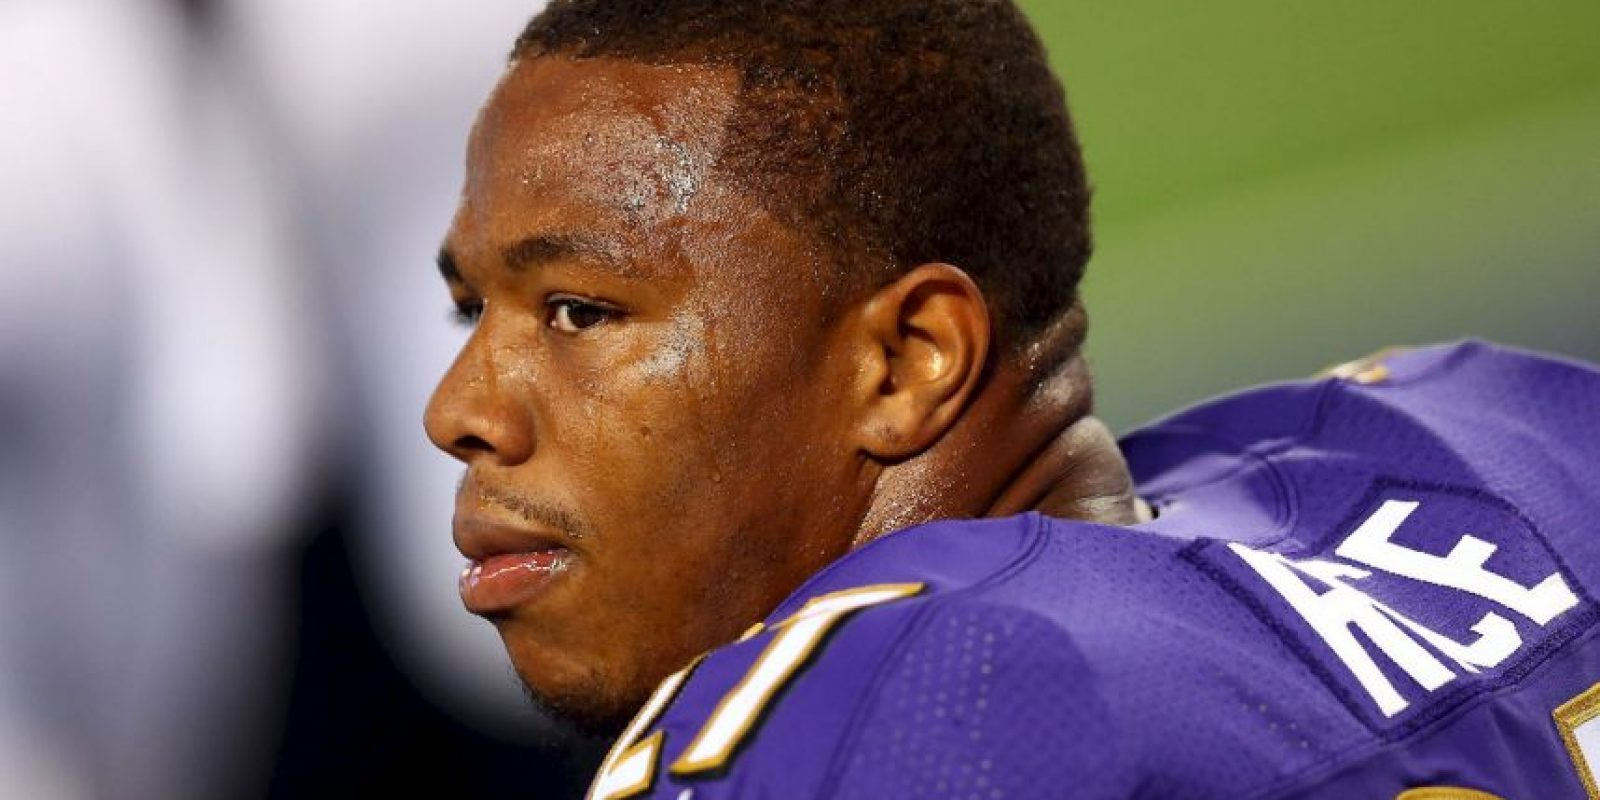 2. Ray Rice Foto: Getty Images